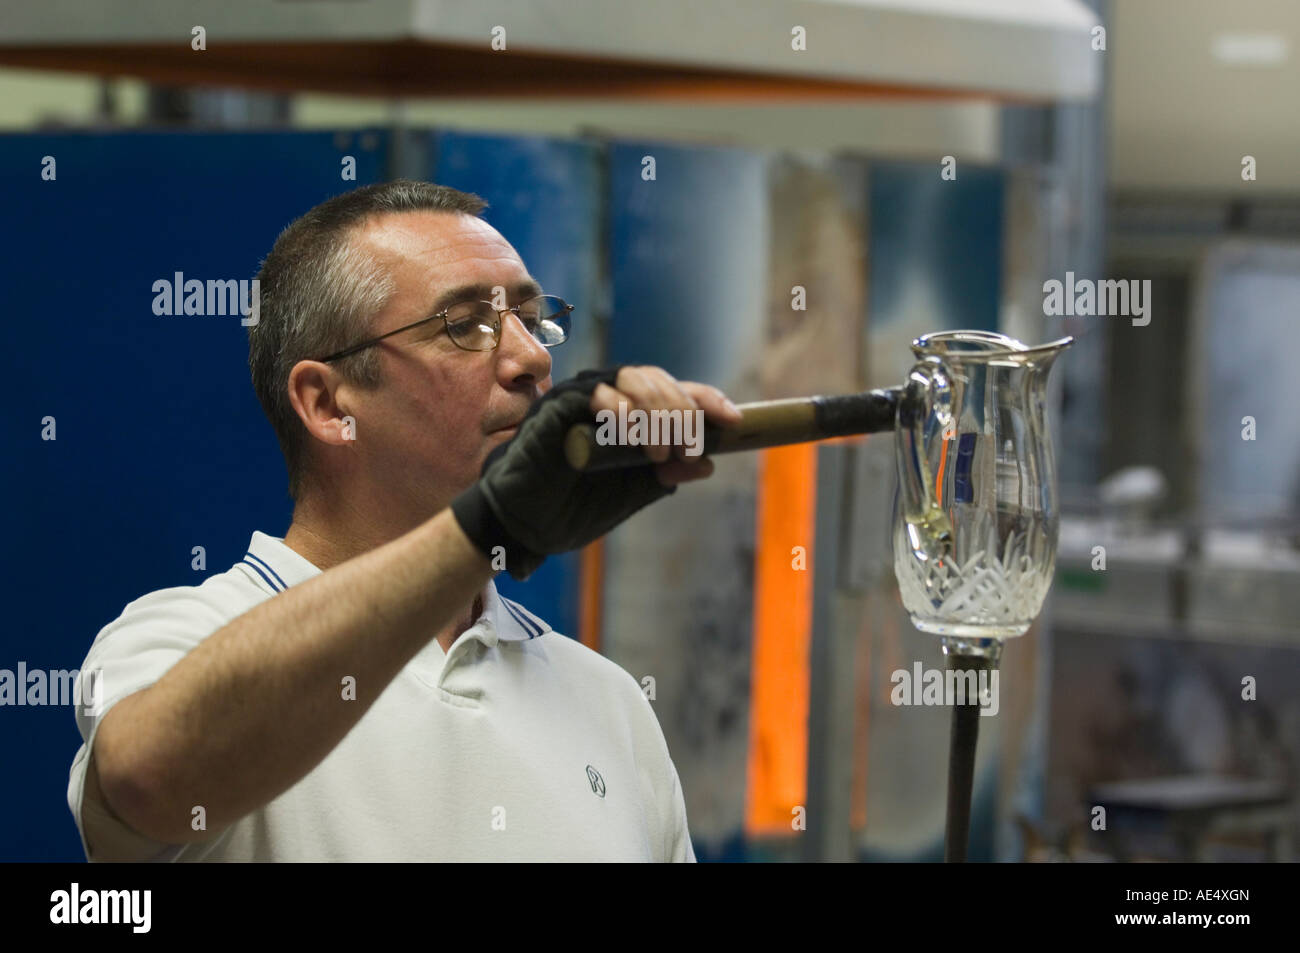 Waterford Crystal, Waterford, County Waterford, Munster, Republic of Ireland (Eire), Europe - Stock Image